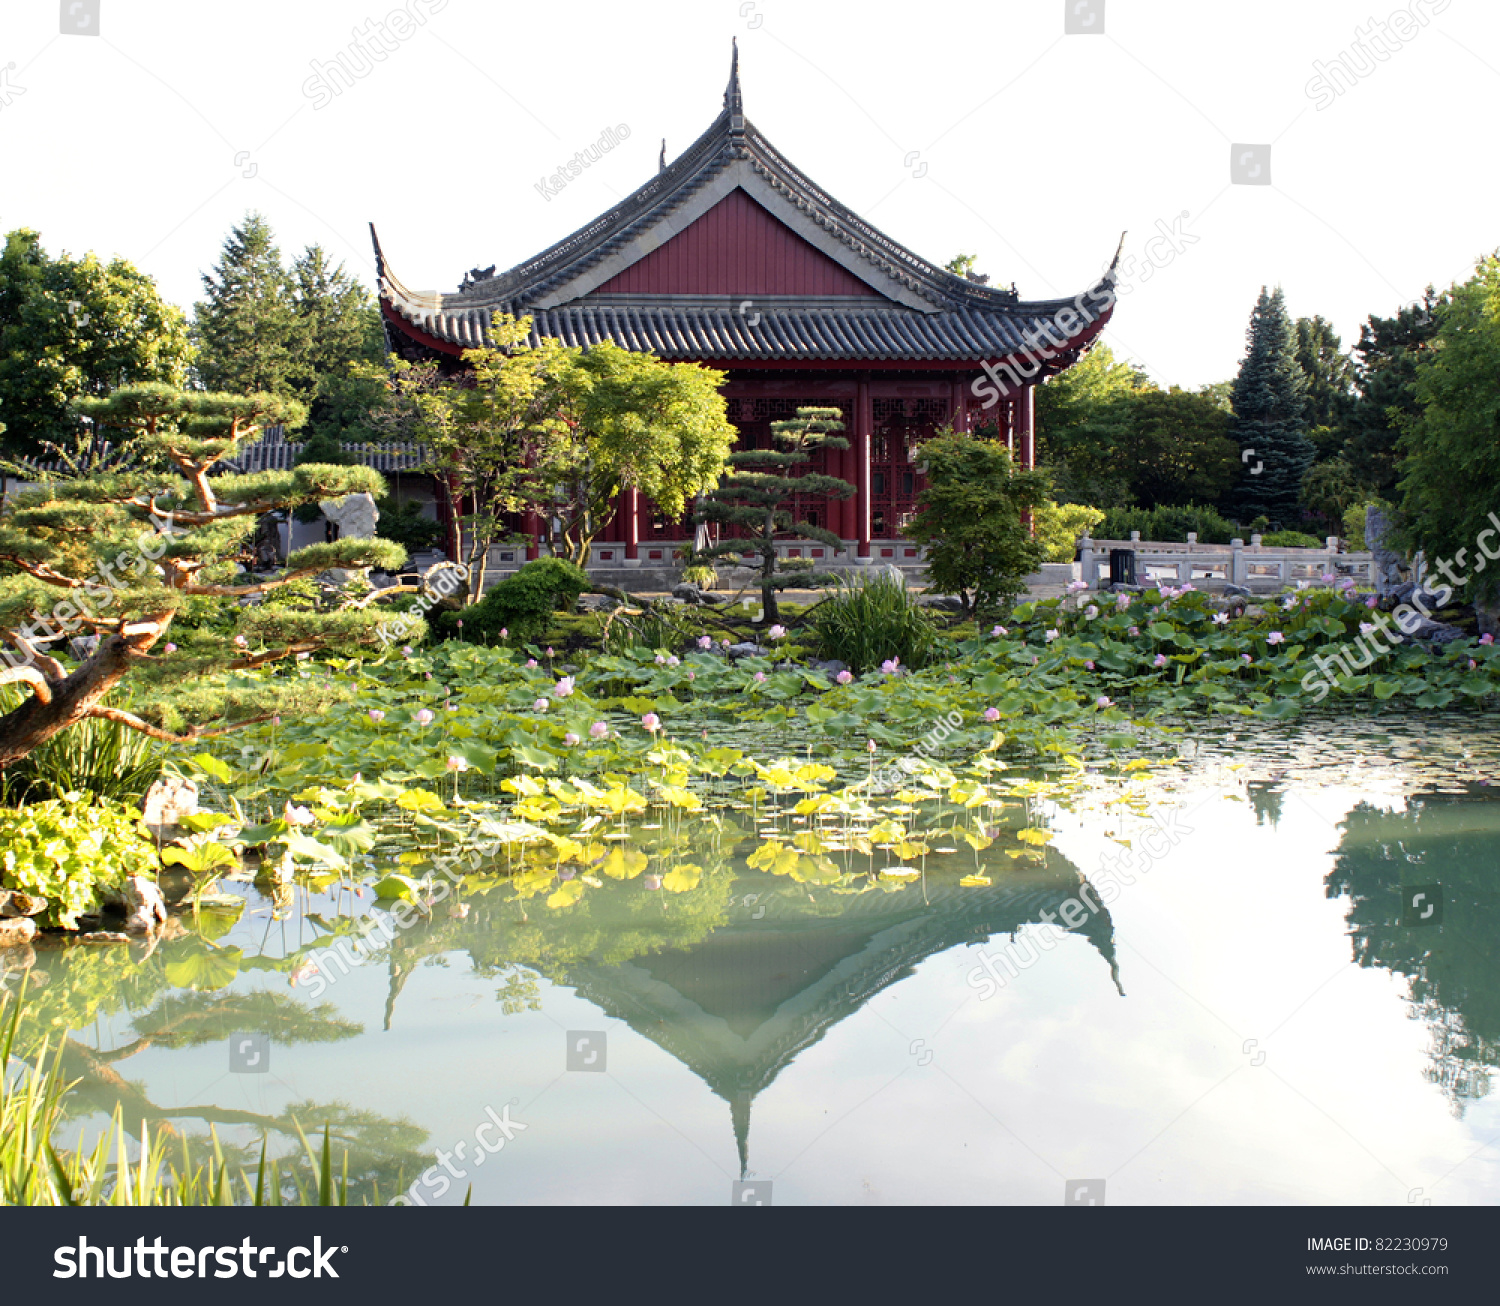 Temple Texas Traditional Home: Traditional Chinese House Near The Pond With Lotuses